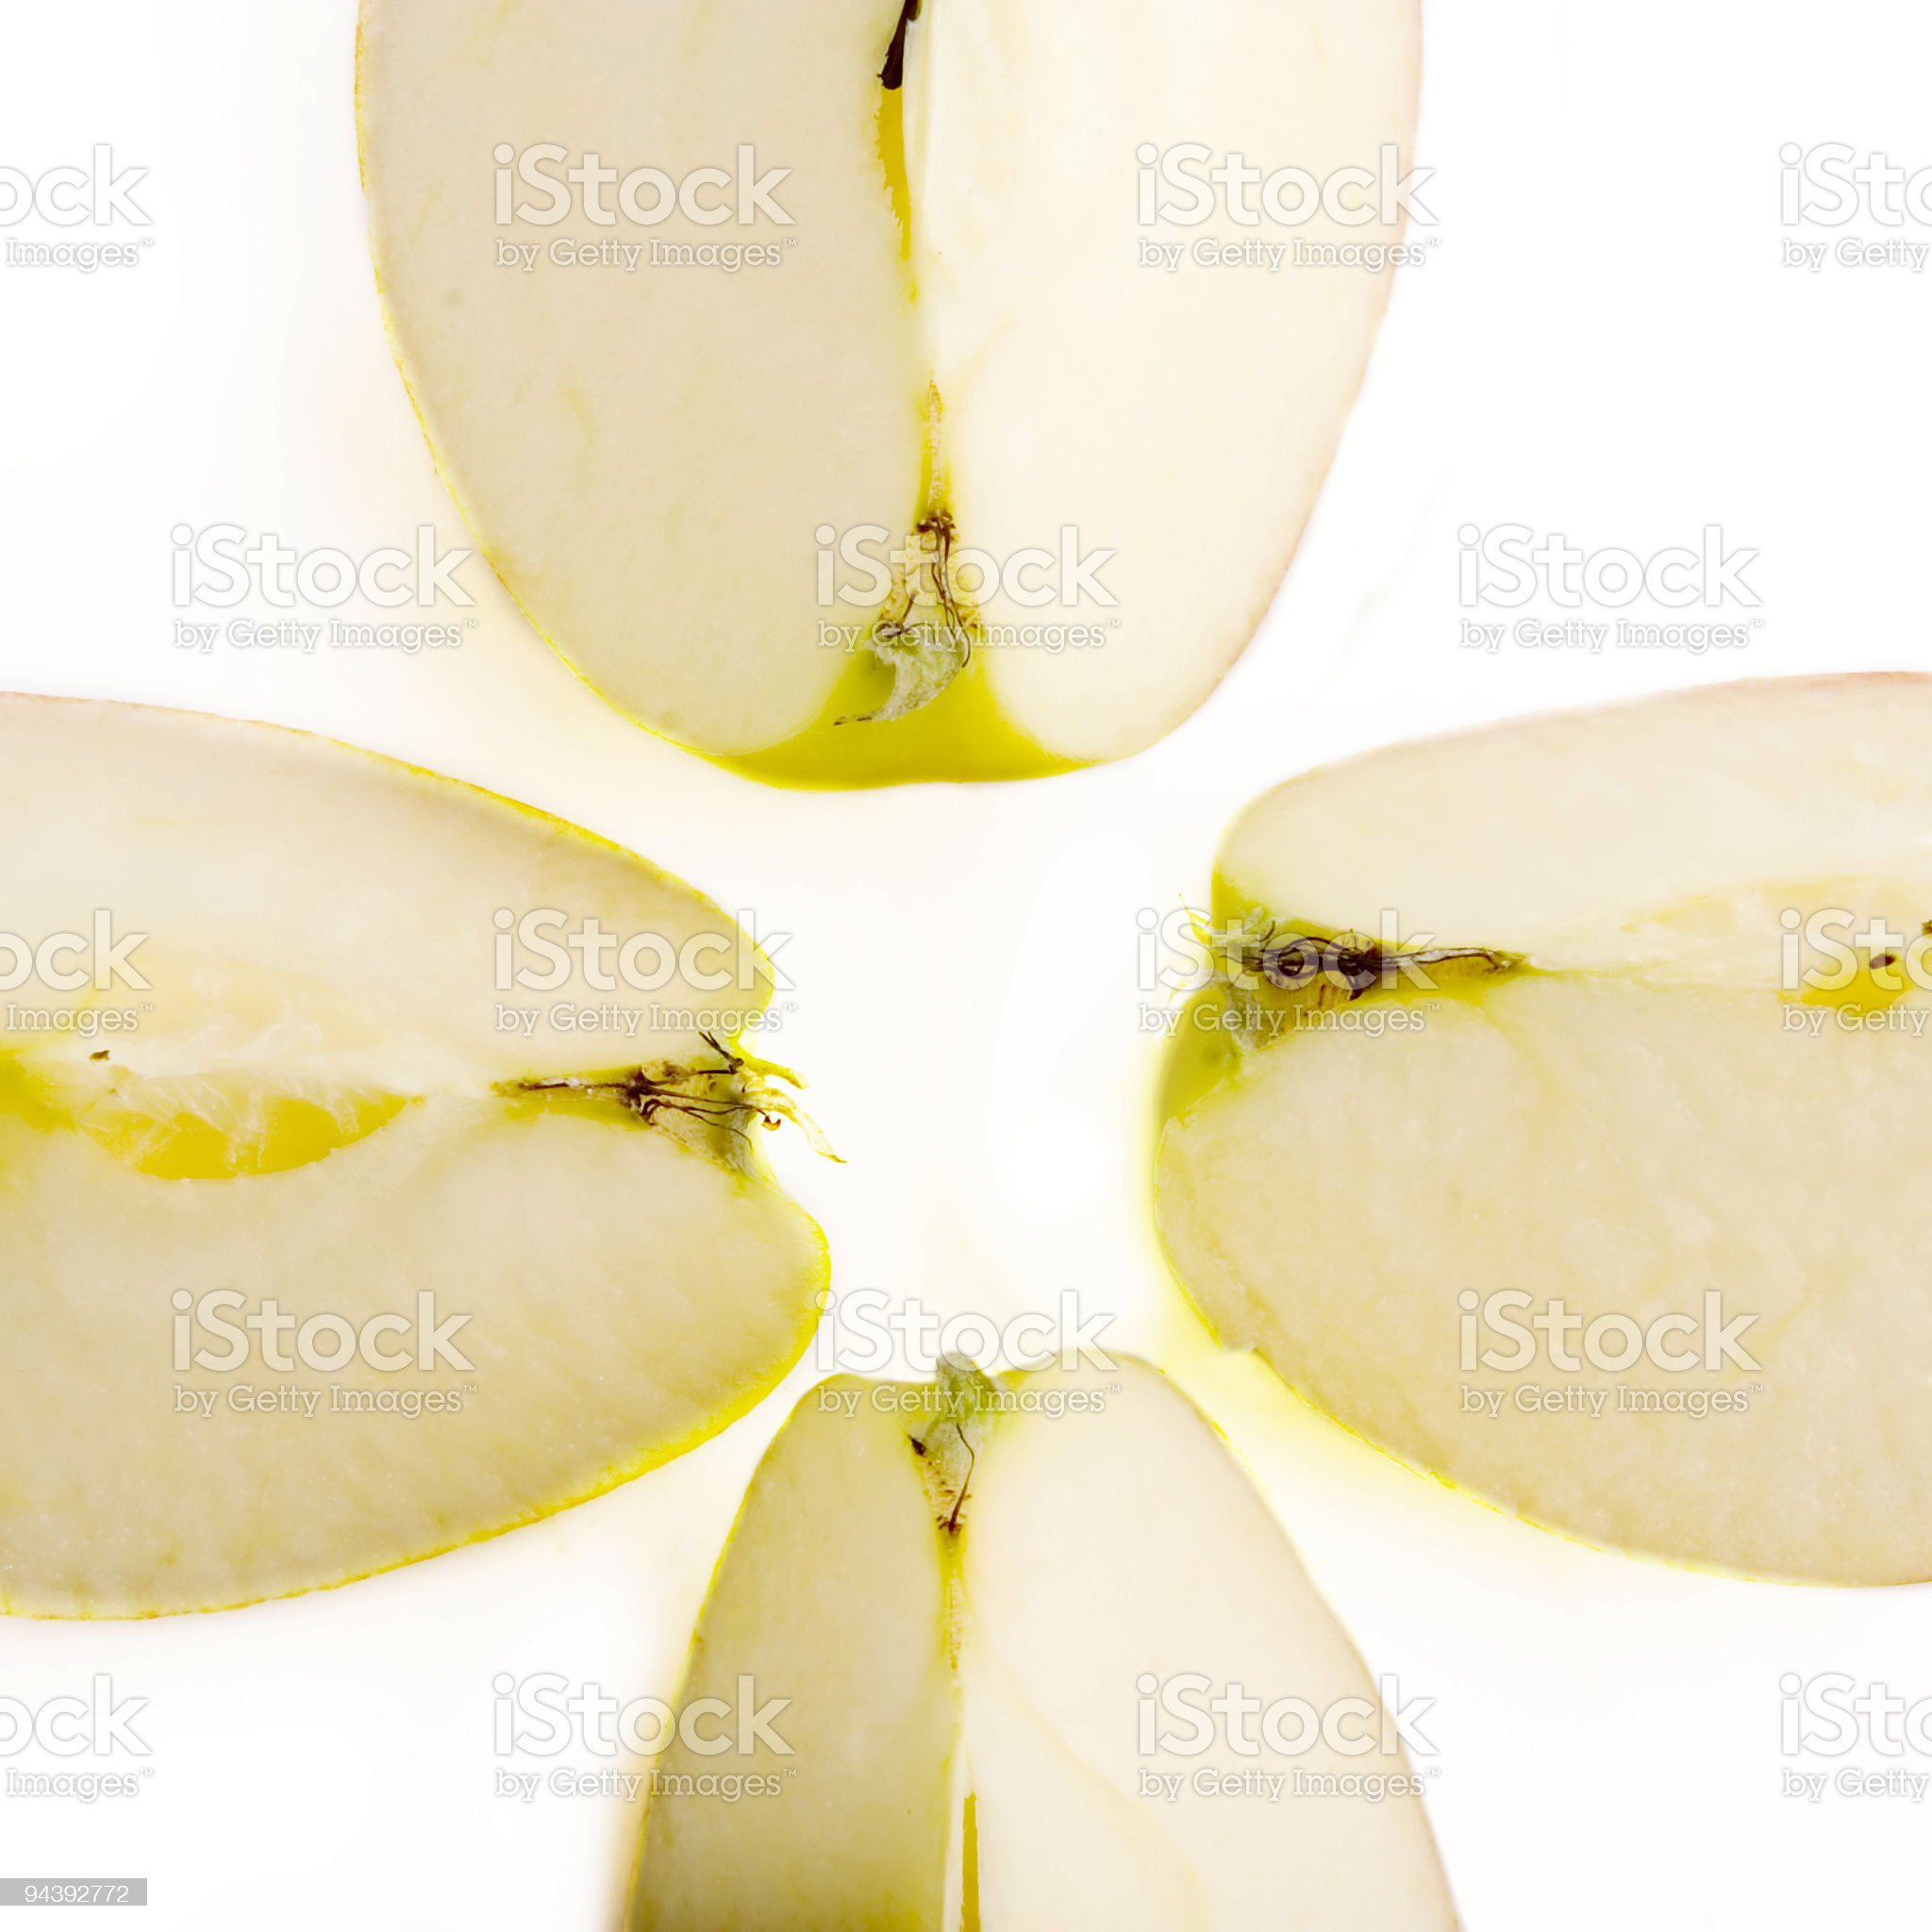 Apple Slices royalty-free stock photo